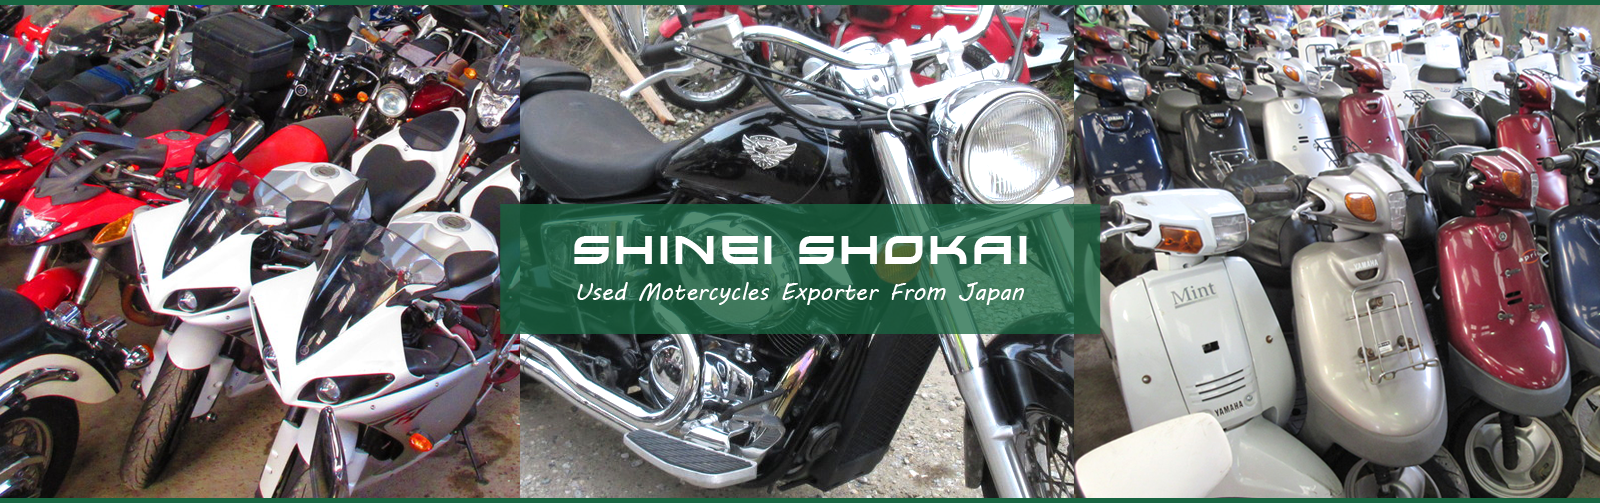 SHINEI SHOKAI | Used Motercycles Exporter From Japan